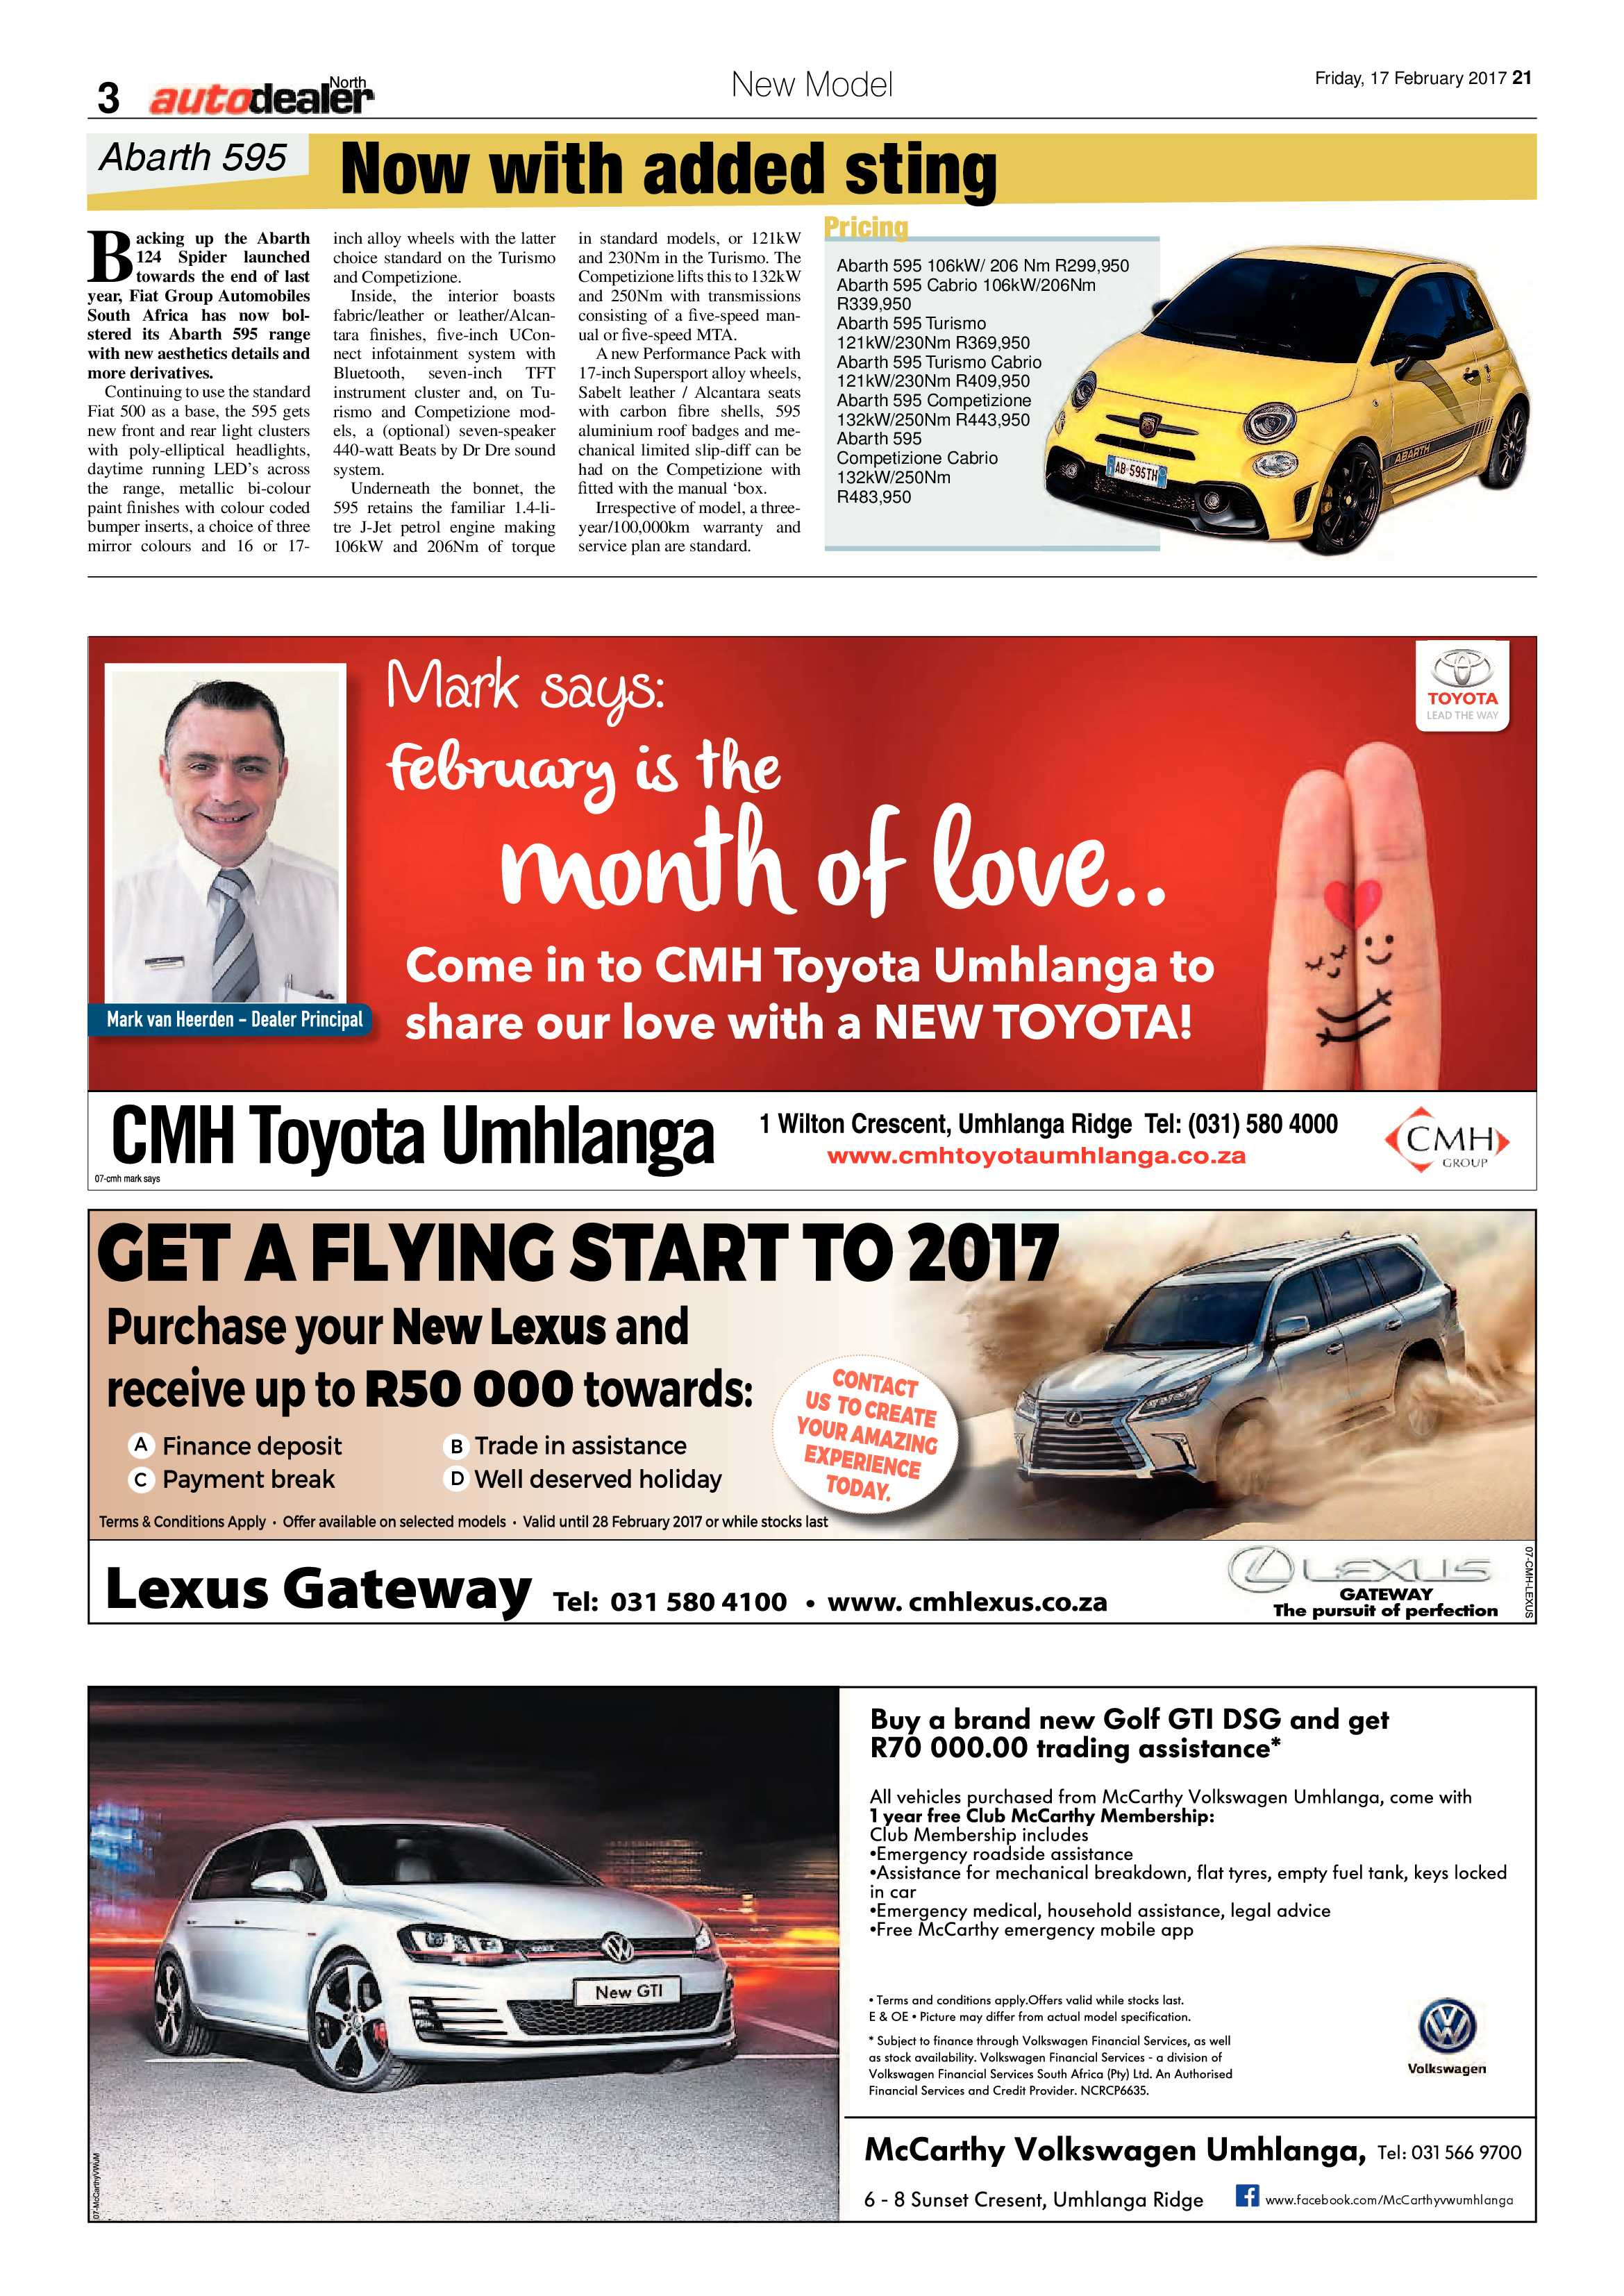 northglen-news-17-february-2017-epapers-page-21